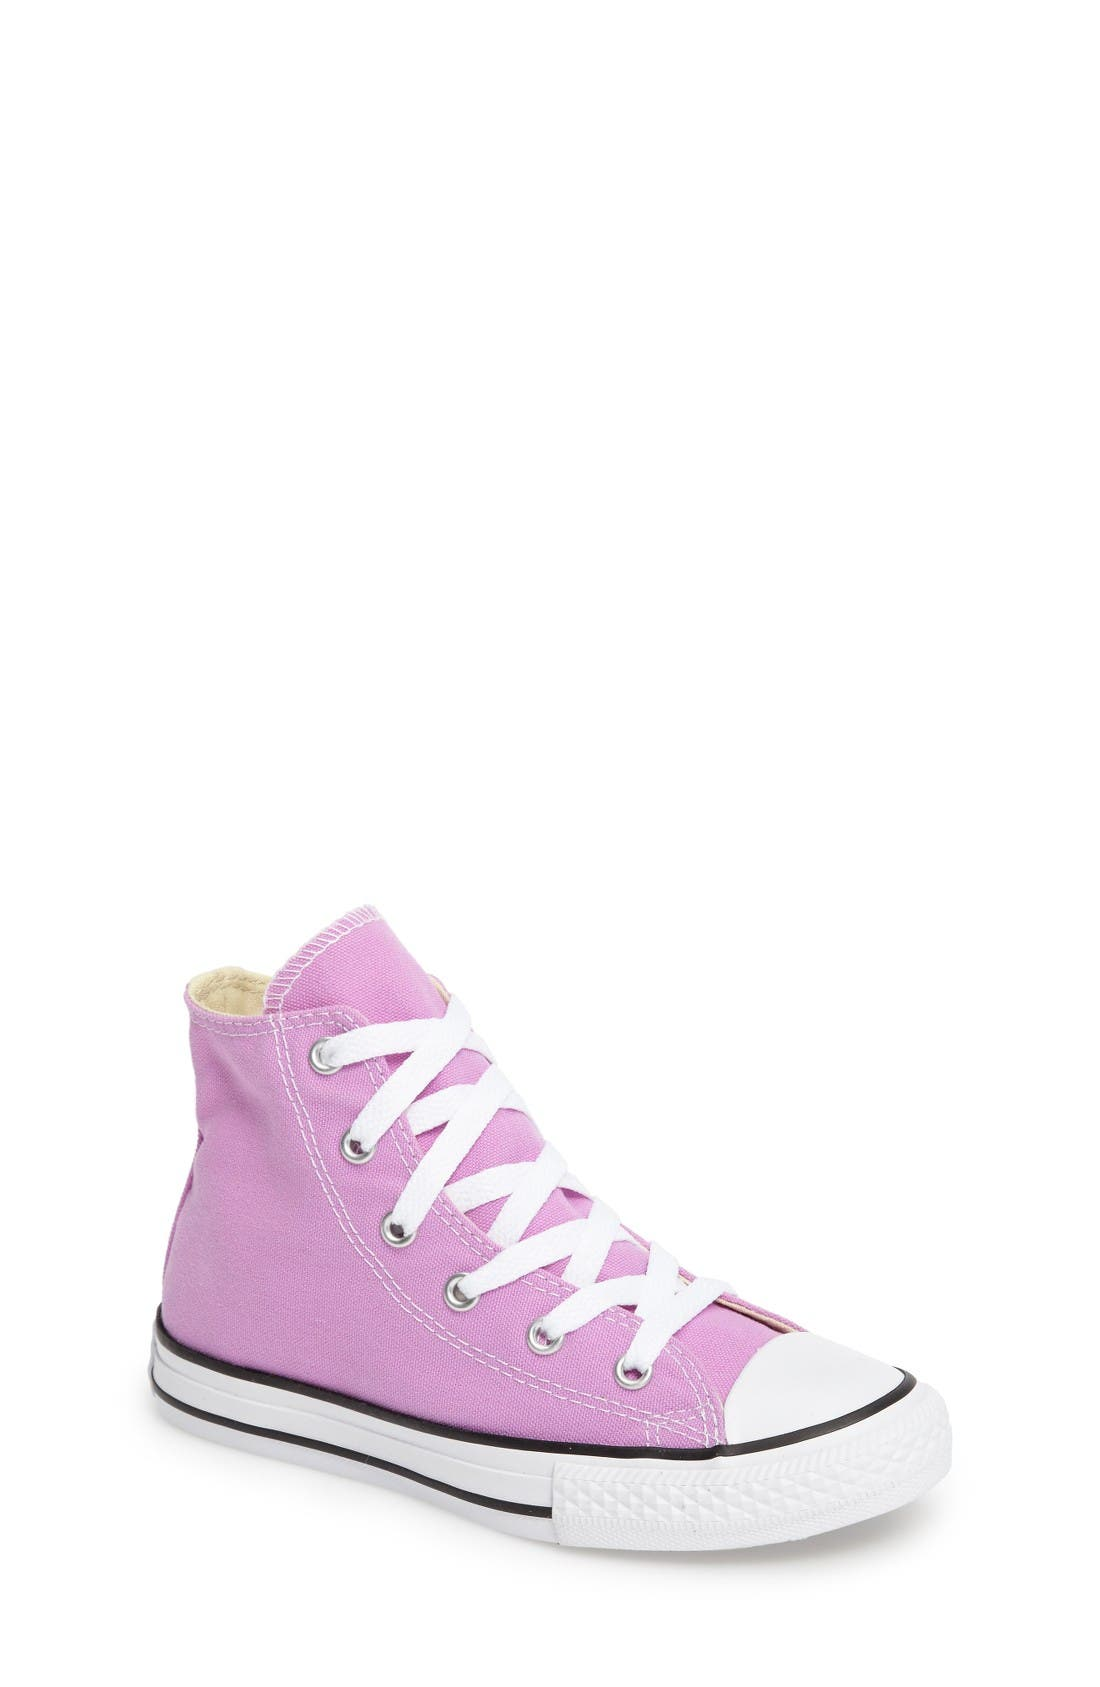 CONVERSE Chuck Taylor<sup>®</sup> Seasonal High Top Sneaker